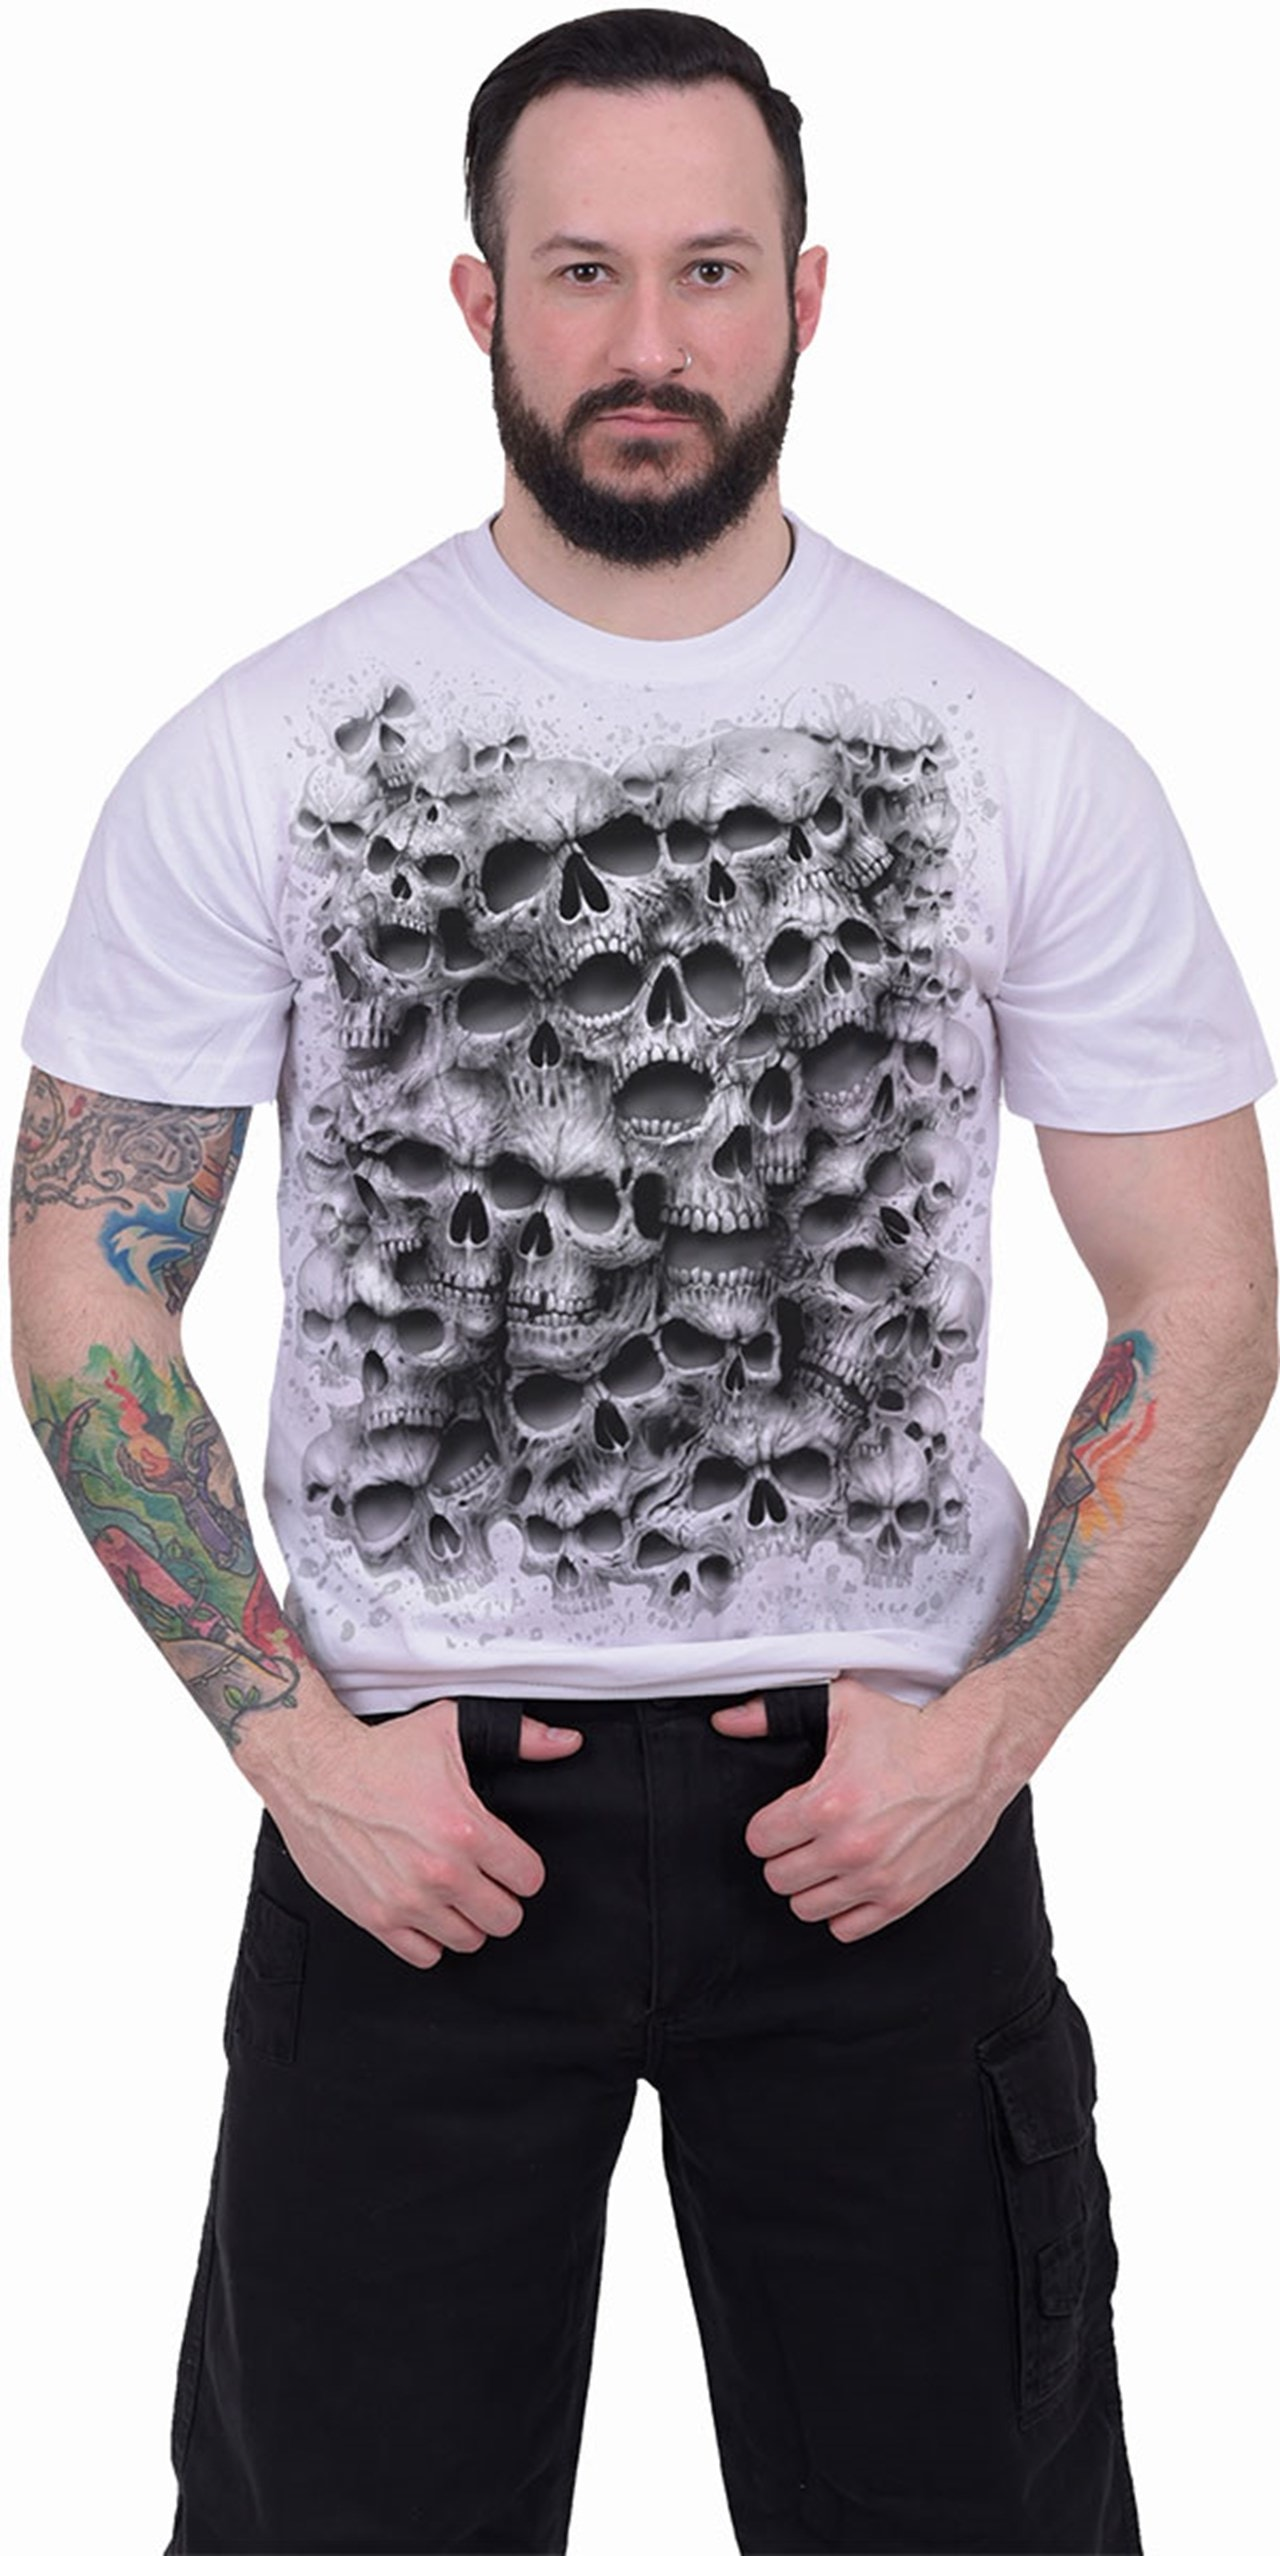 Spiral: White Twisted Skulls (Small) - 3